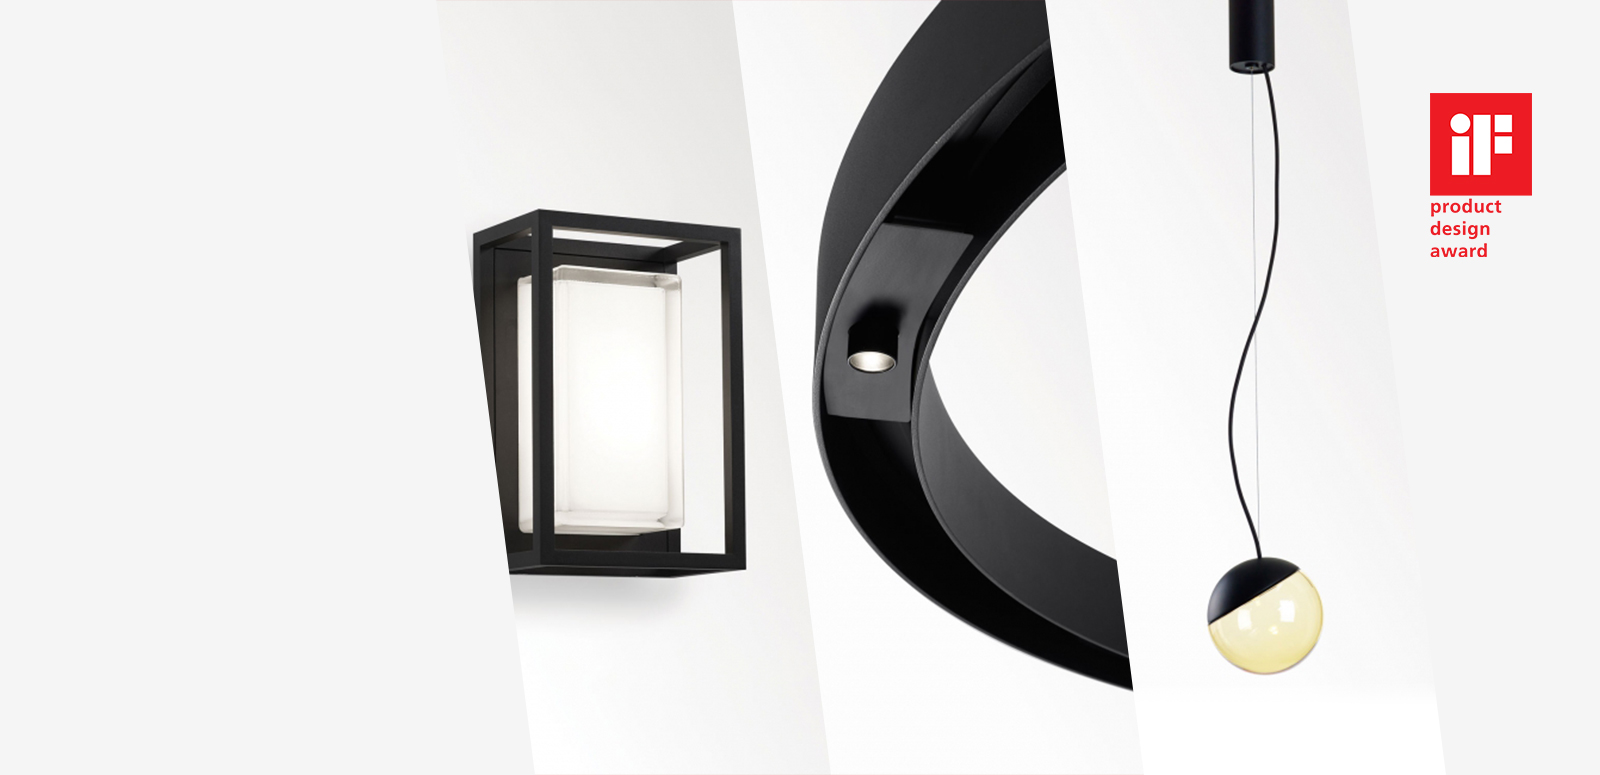 If Design Award 2016 If Design Award 2016 - News - Delta Light